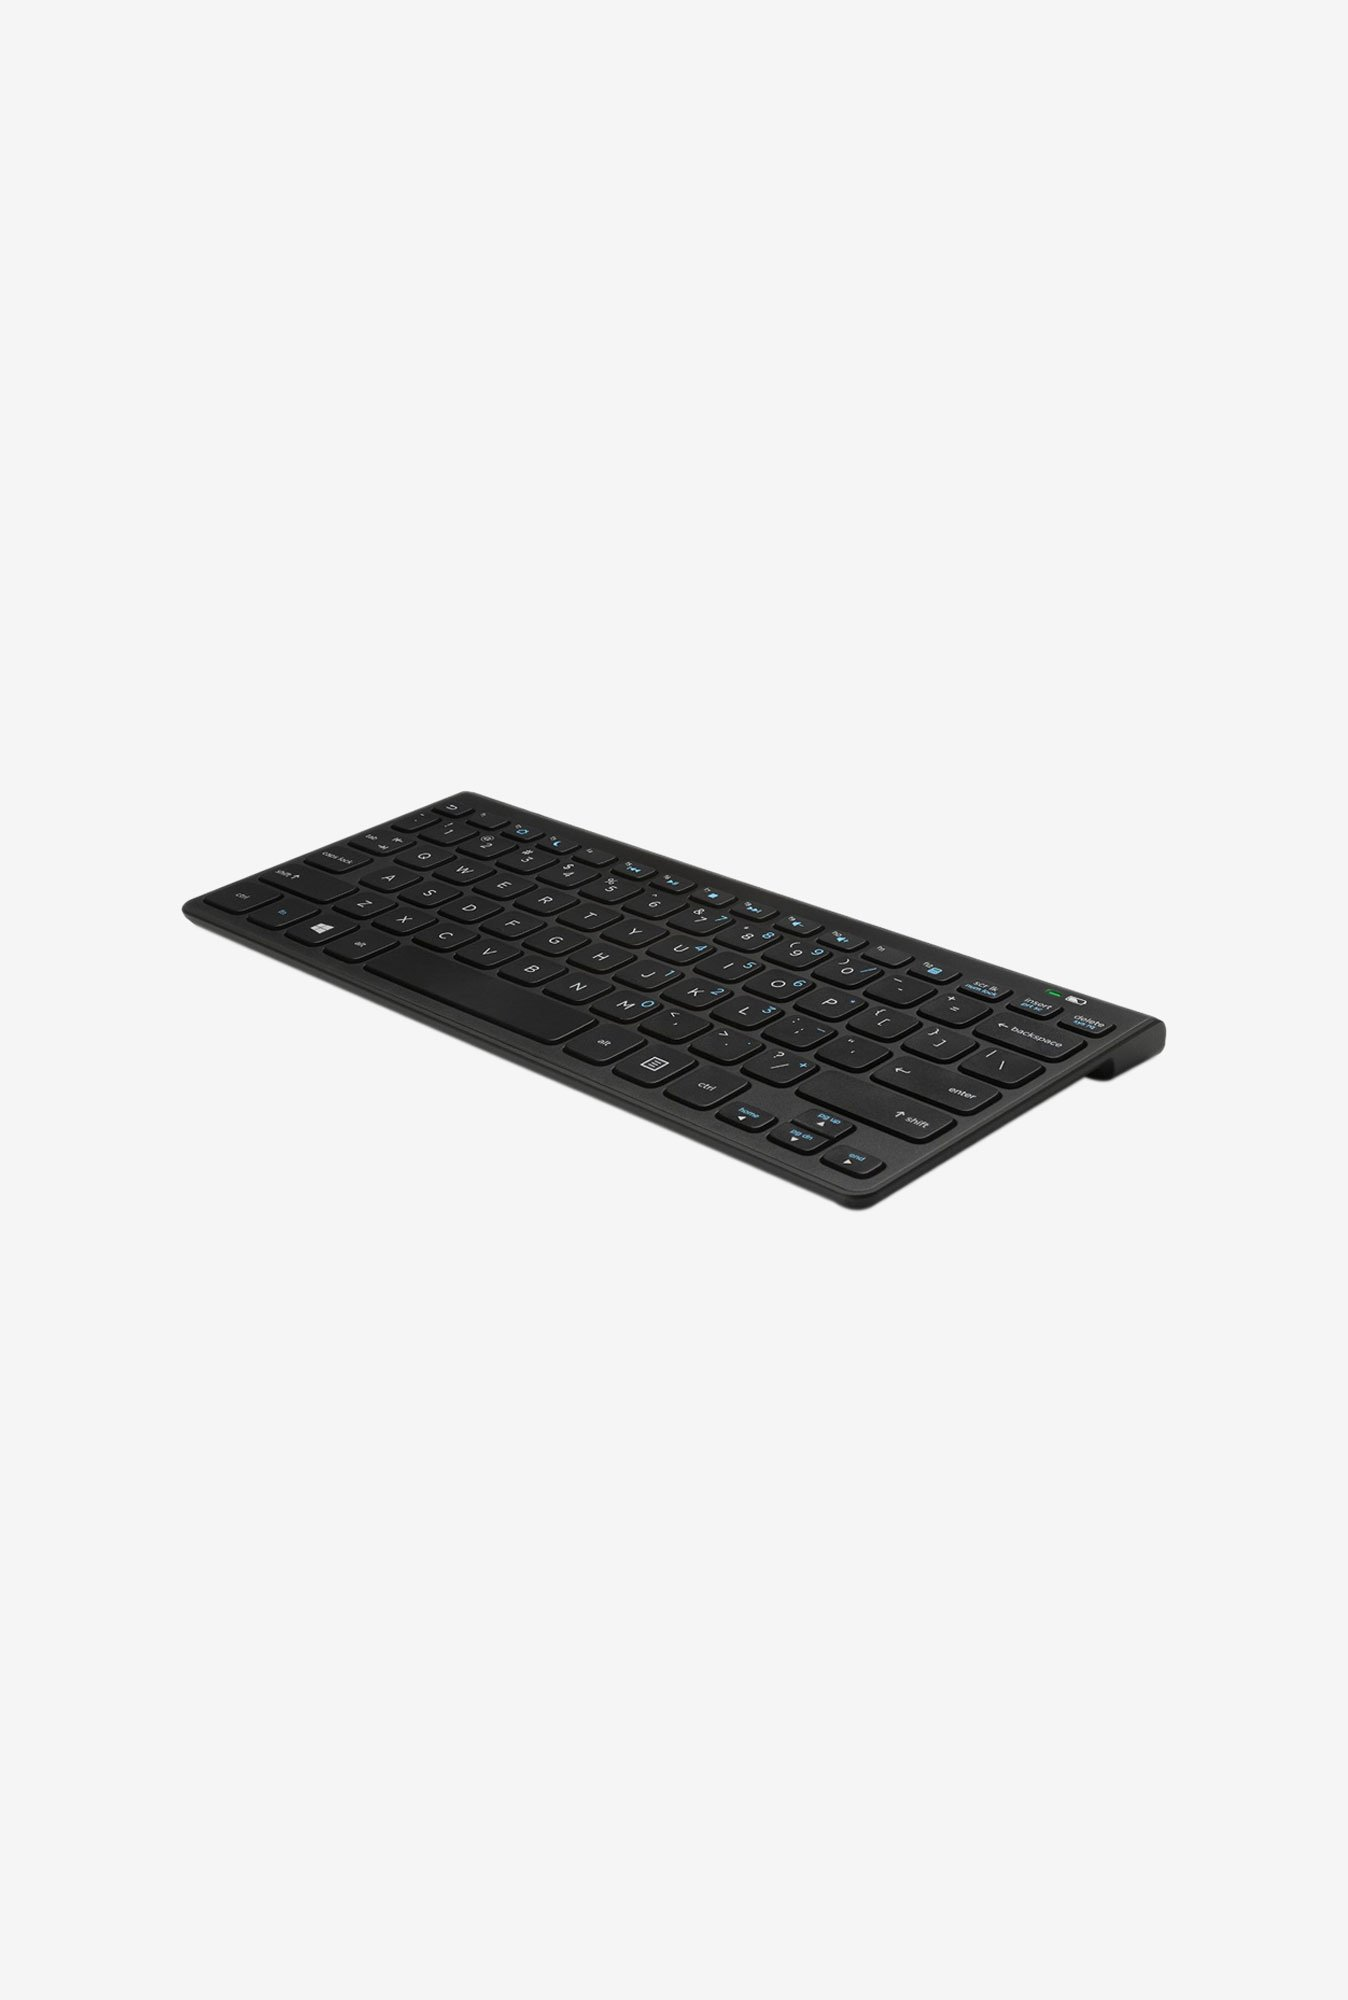 HP F3J73AA Bluetooth Keyboard Black